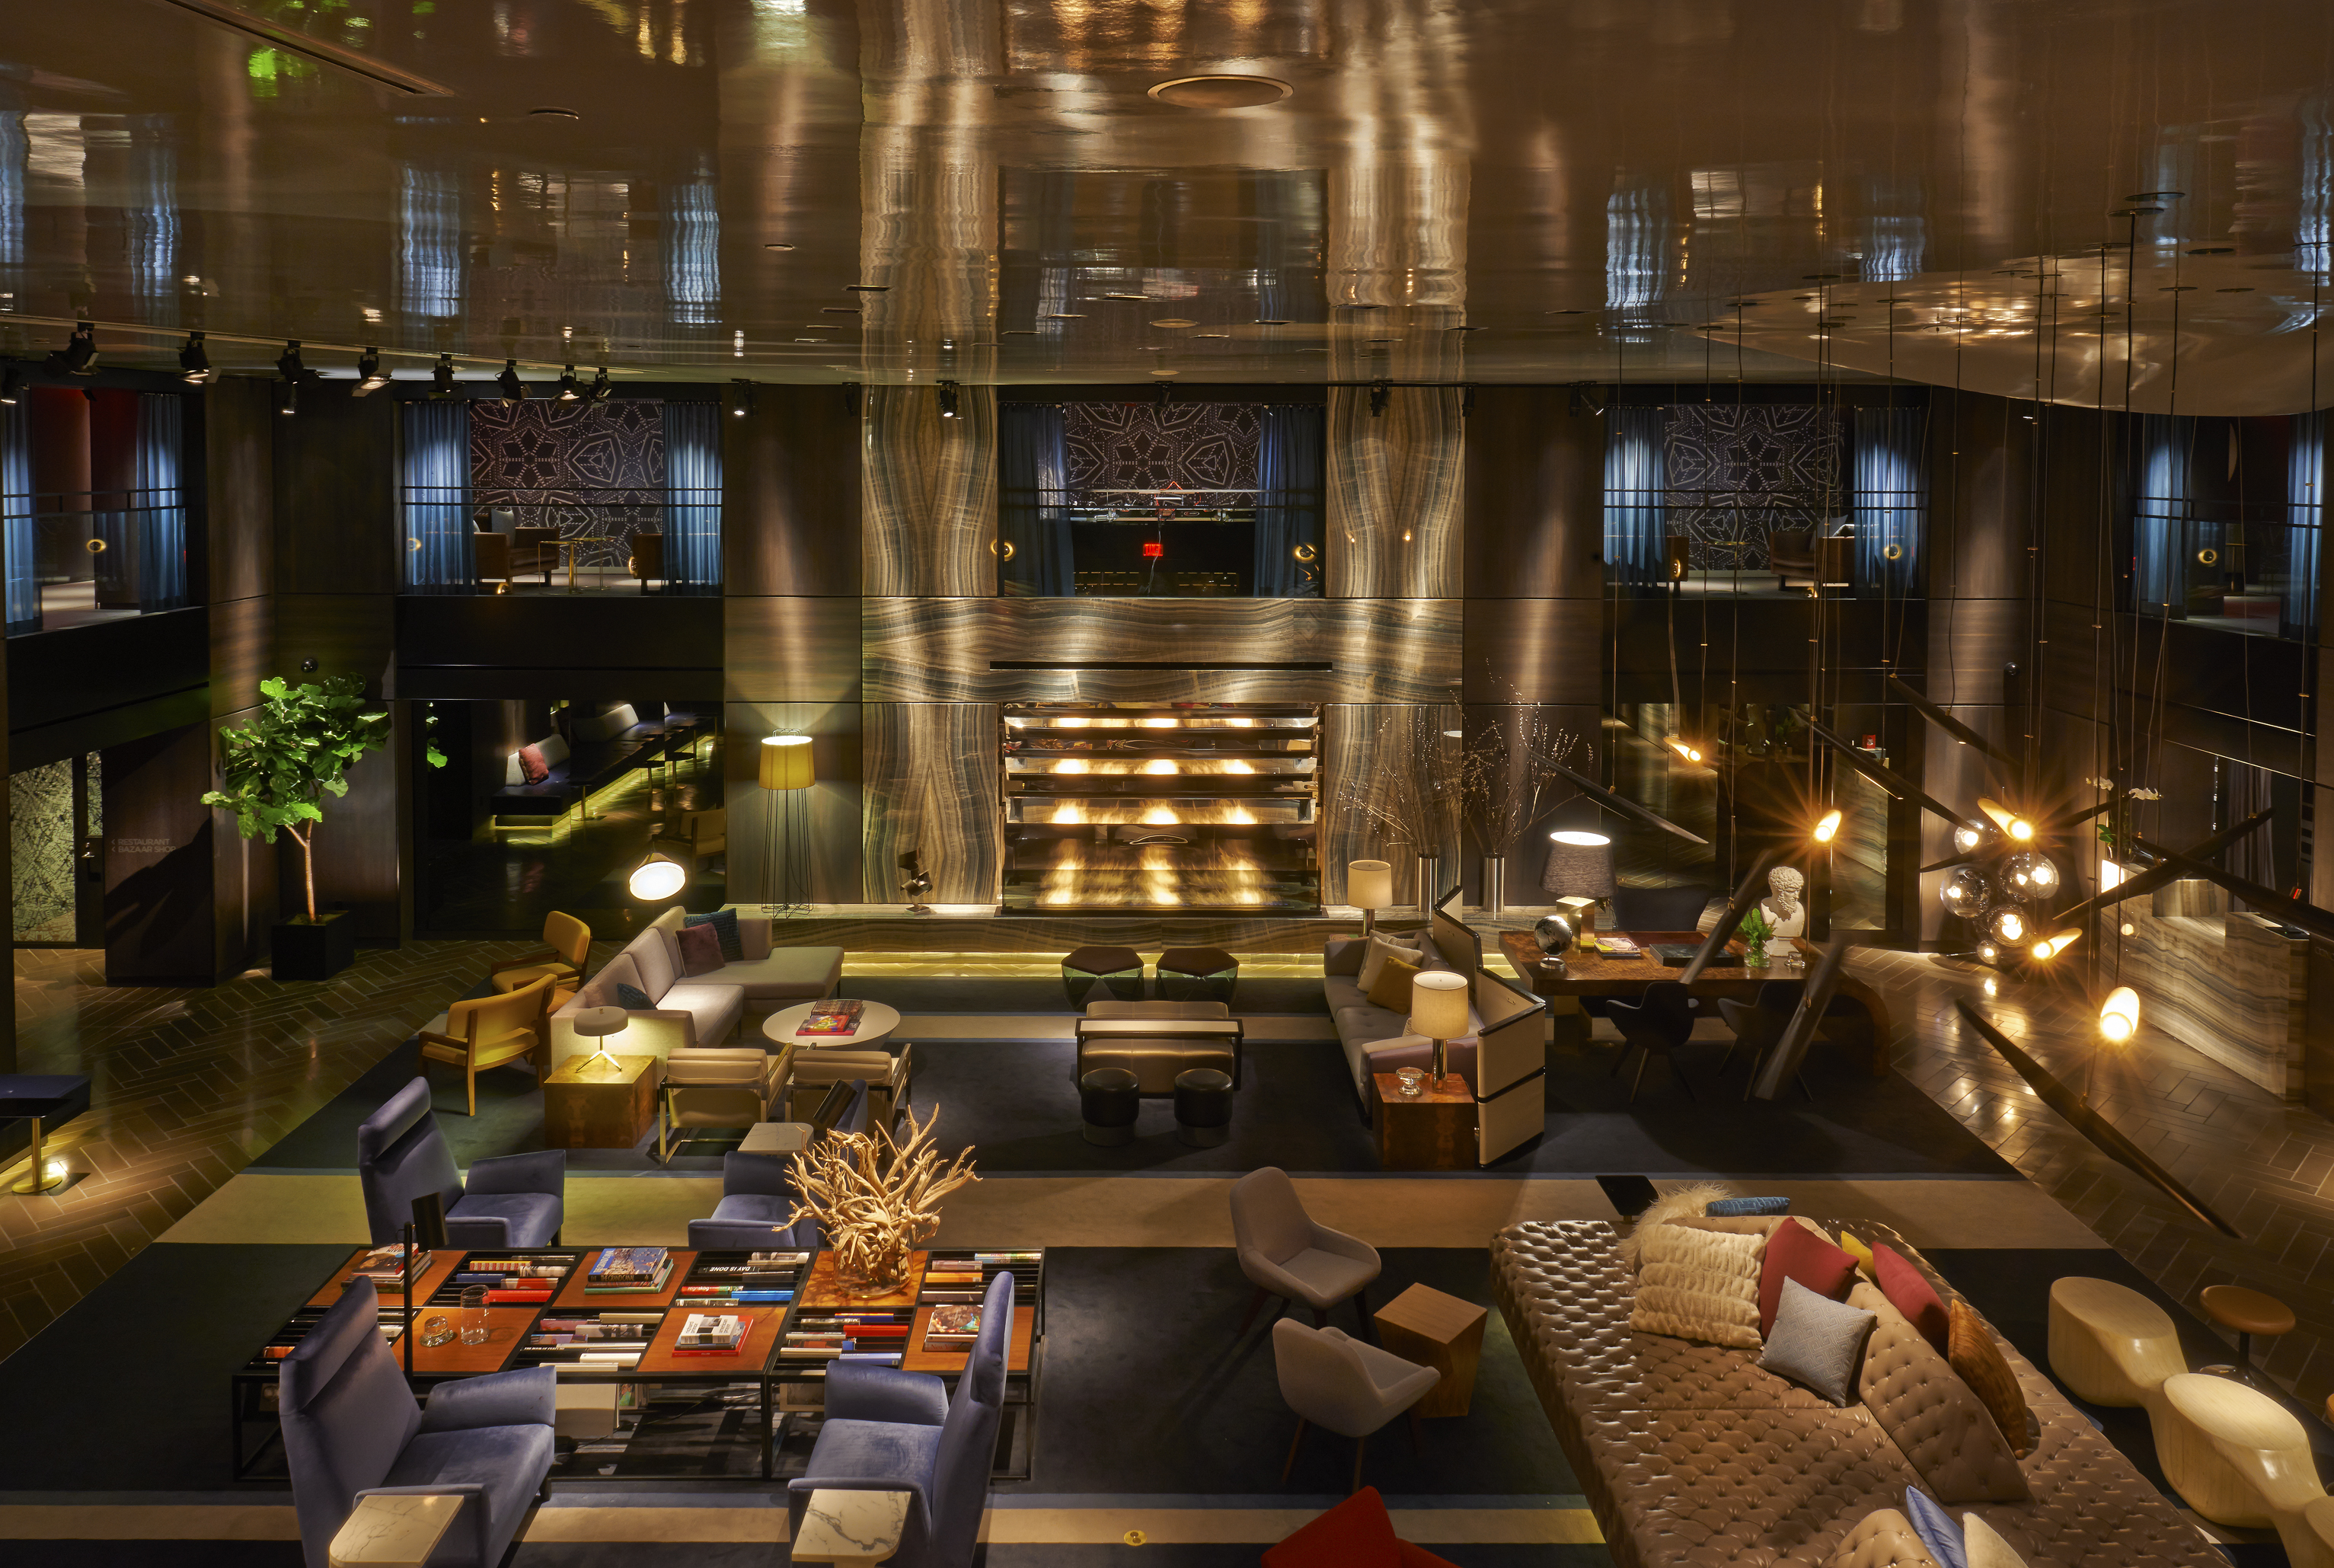 Luxury design ideas from Paramount Hotel in New York luxury homes Spanish Design: check out these luxury homes Luxury design ideas from Paramount Hotel in New York luxury homes Spanish Design: check out these luxury homes Luxury design ideas from Paramount Hotel in New York